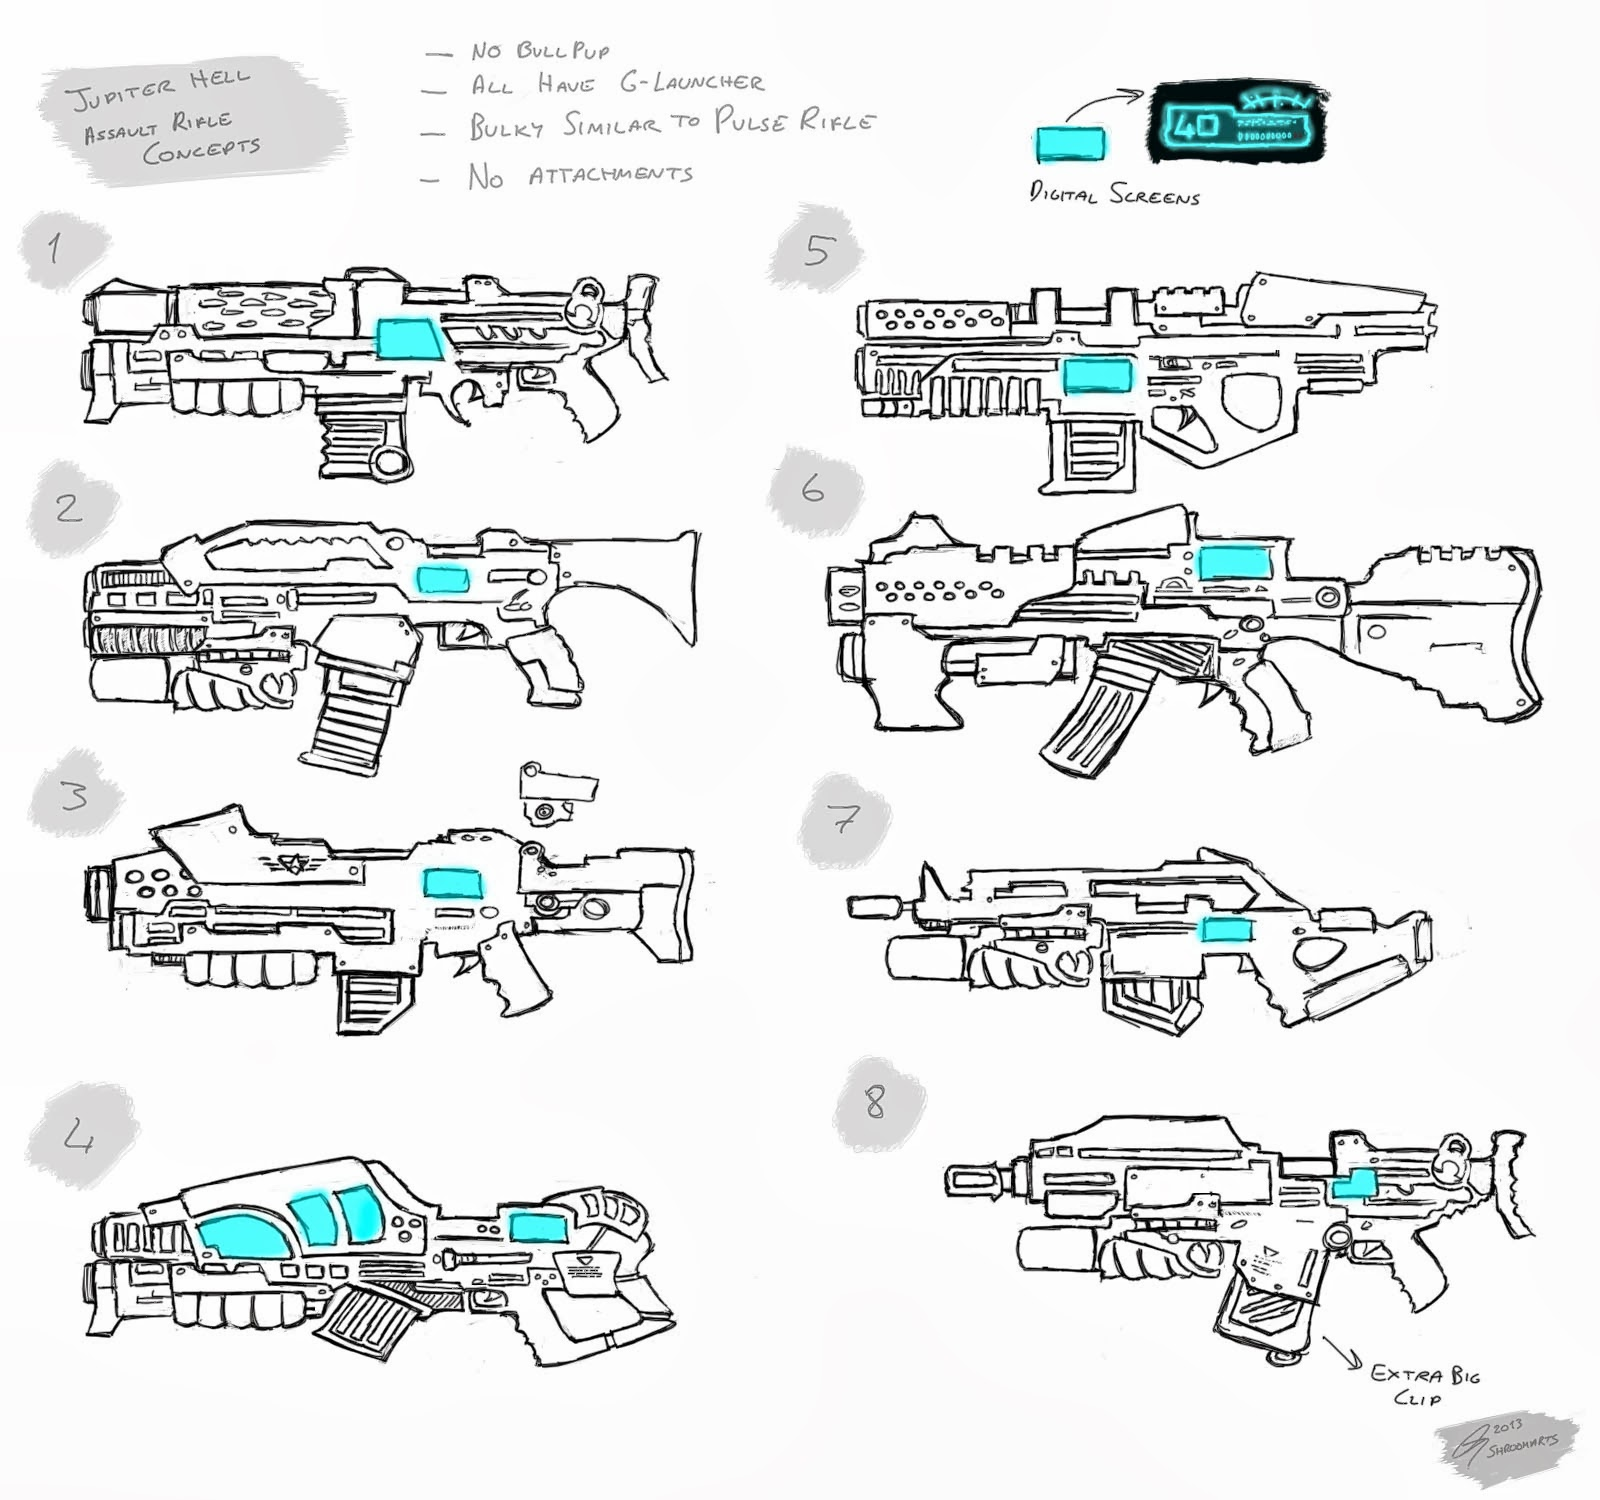 Jupiter Hell - Assault Rifle concepts